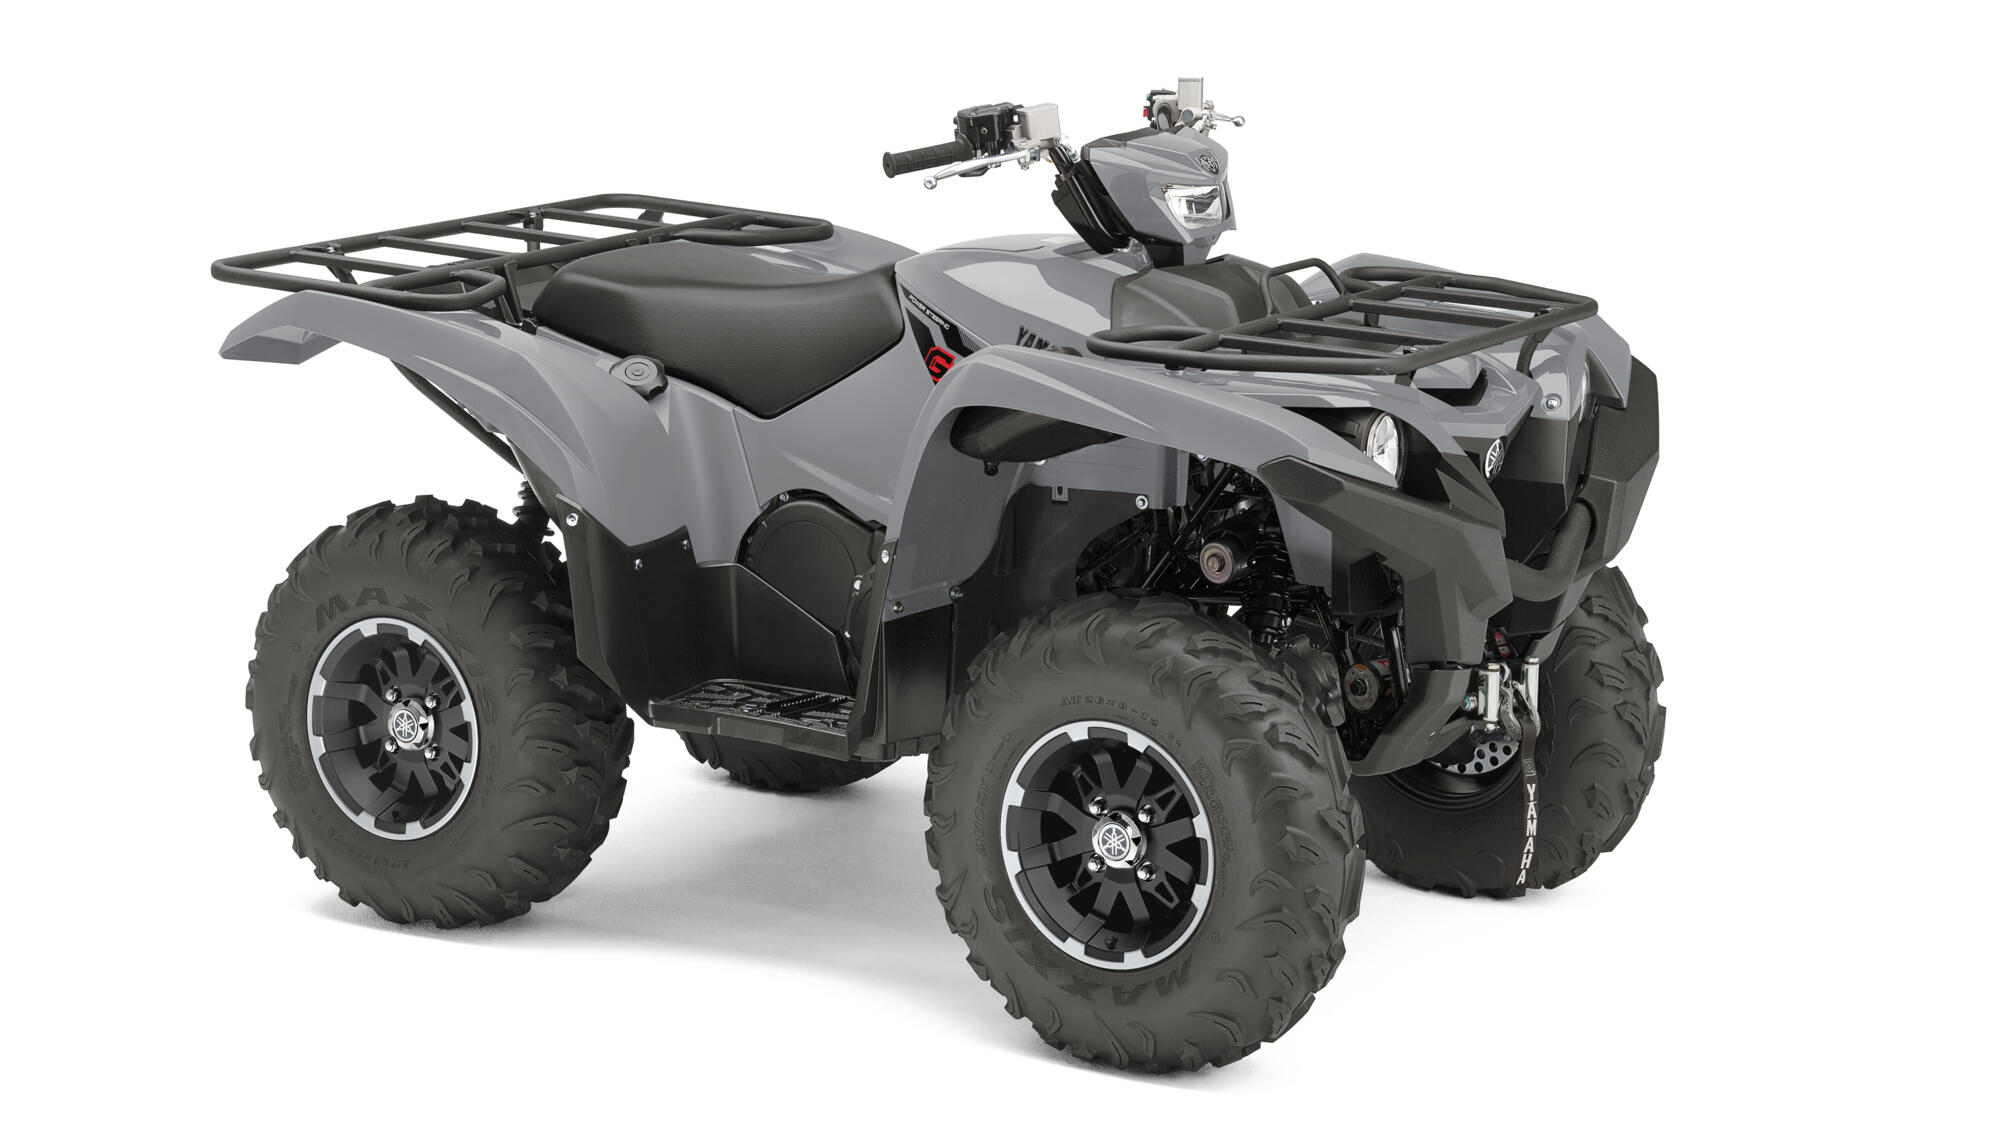 Yamaha Grizzly 700 quad